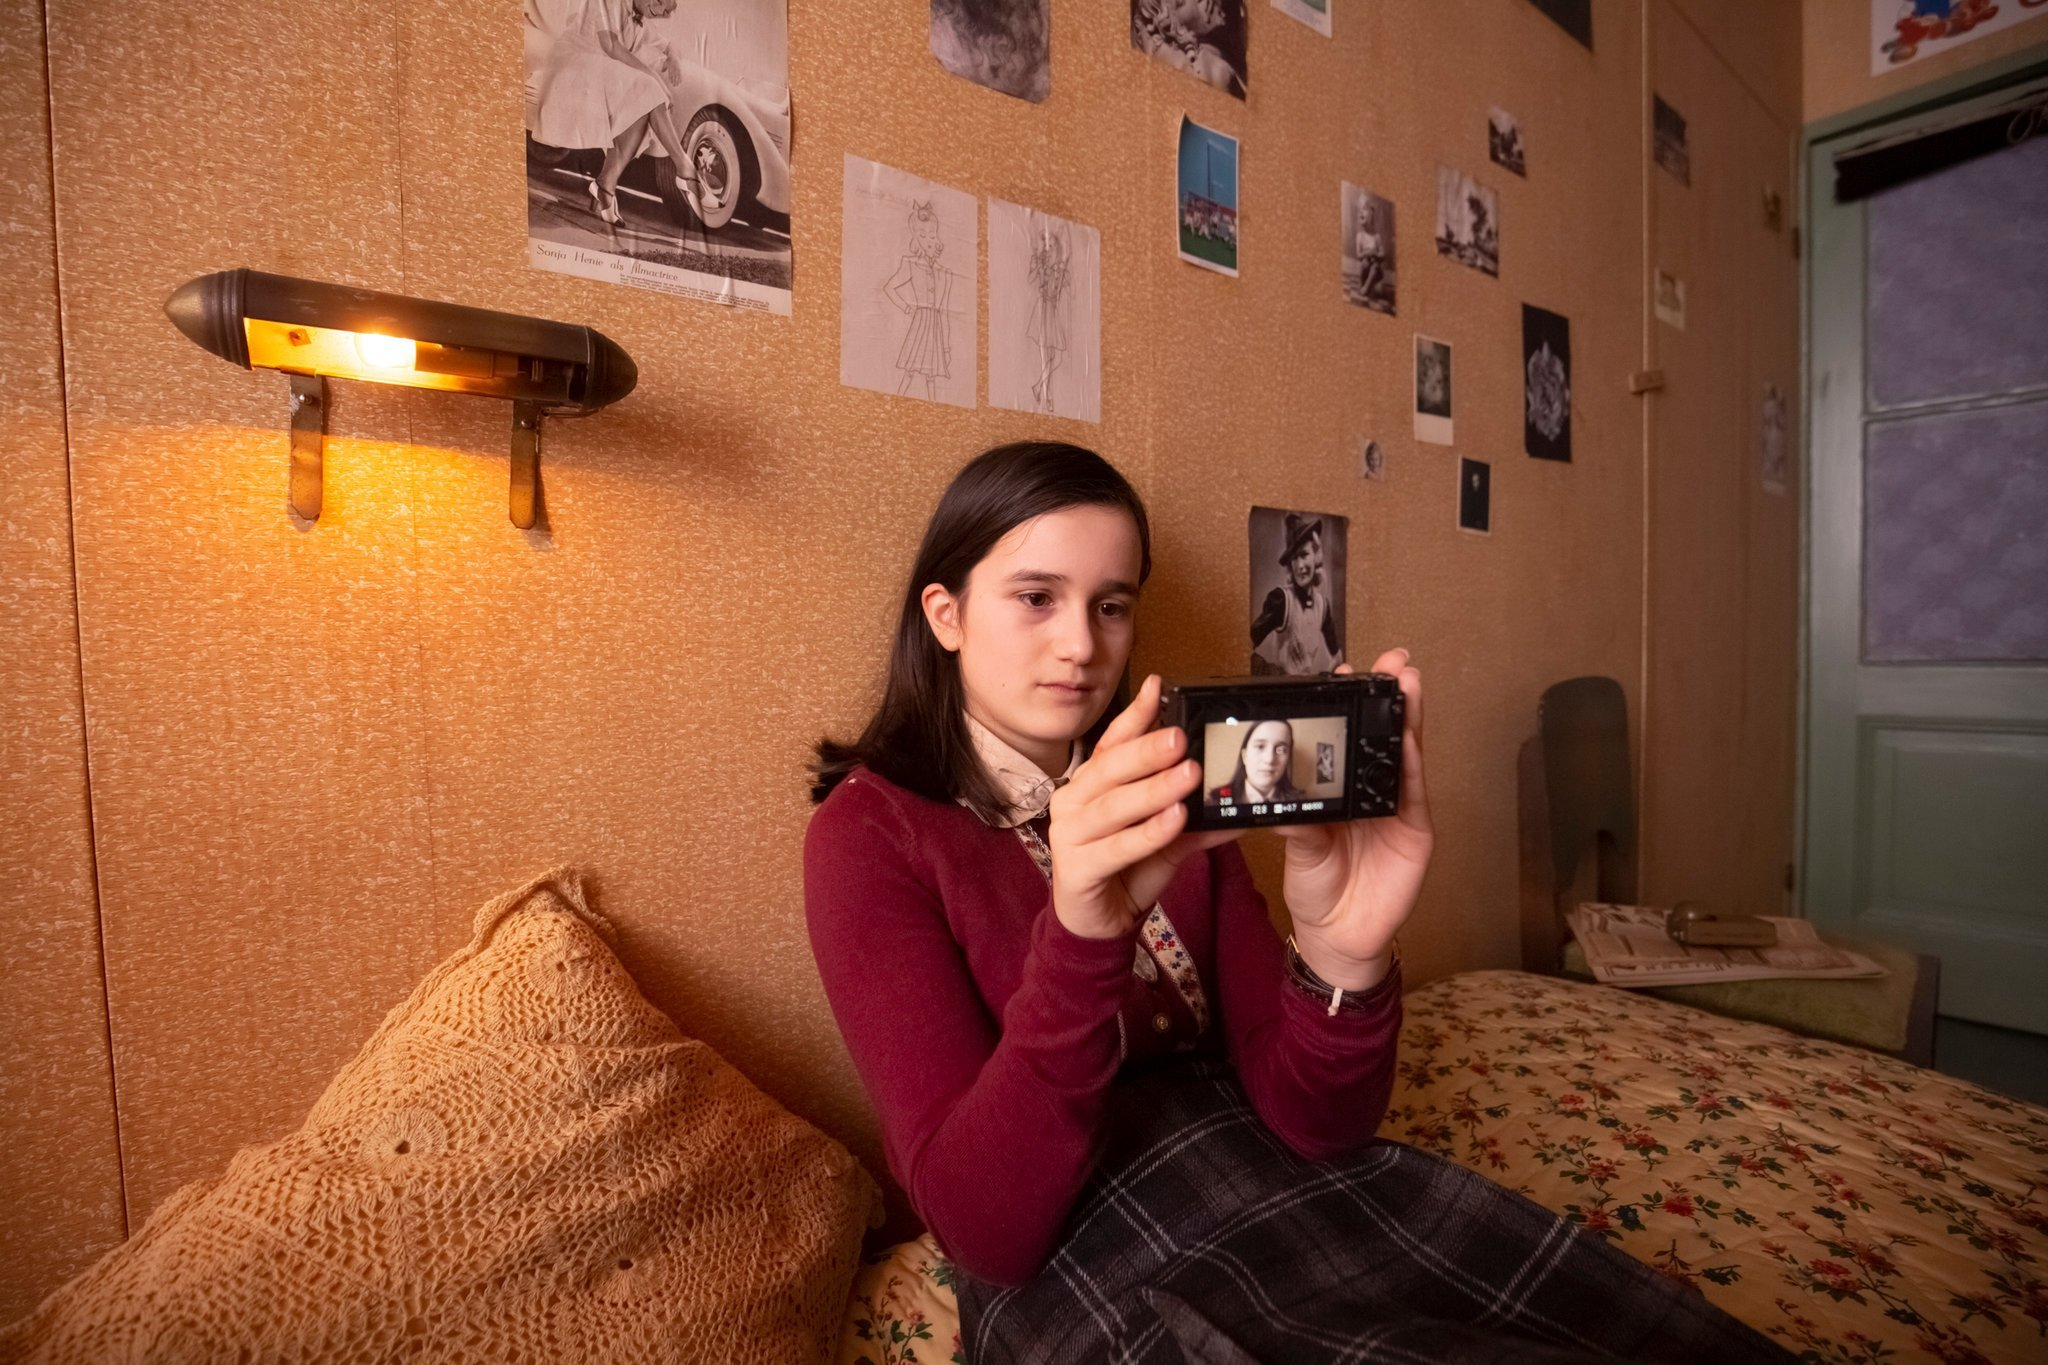 The (Video) Diary of Anne Frank - The New York Times